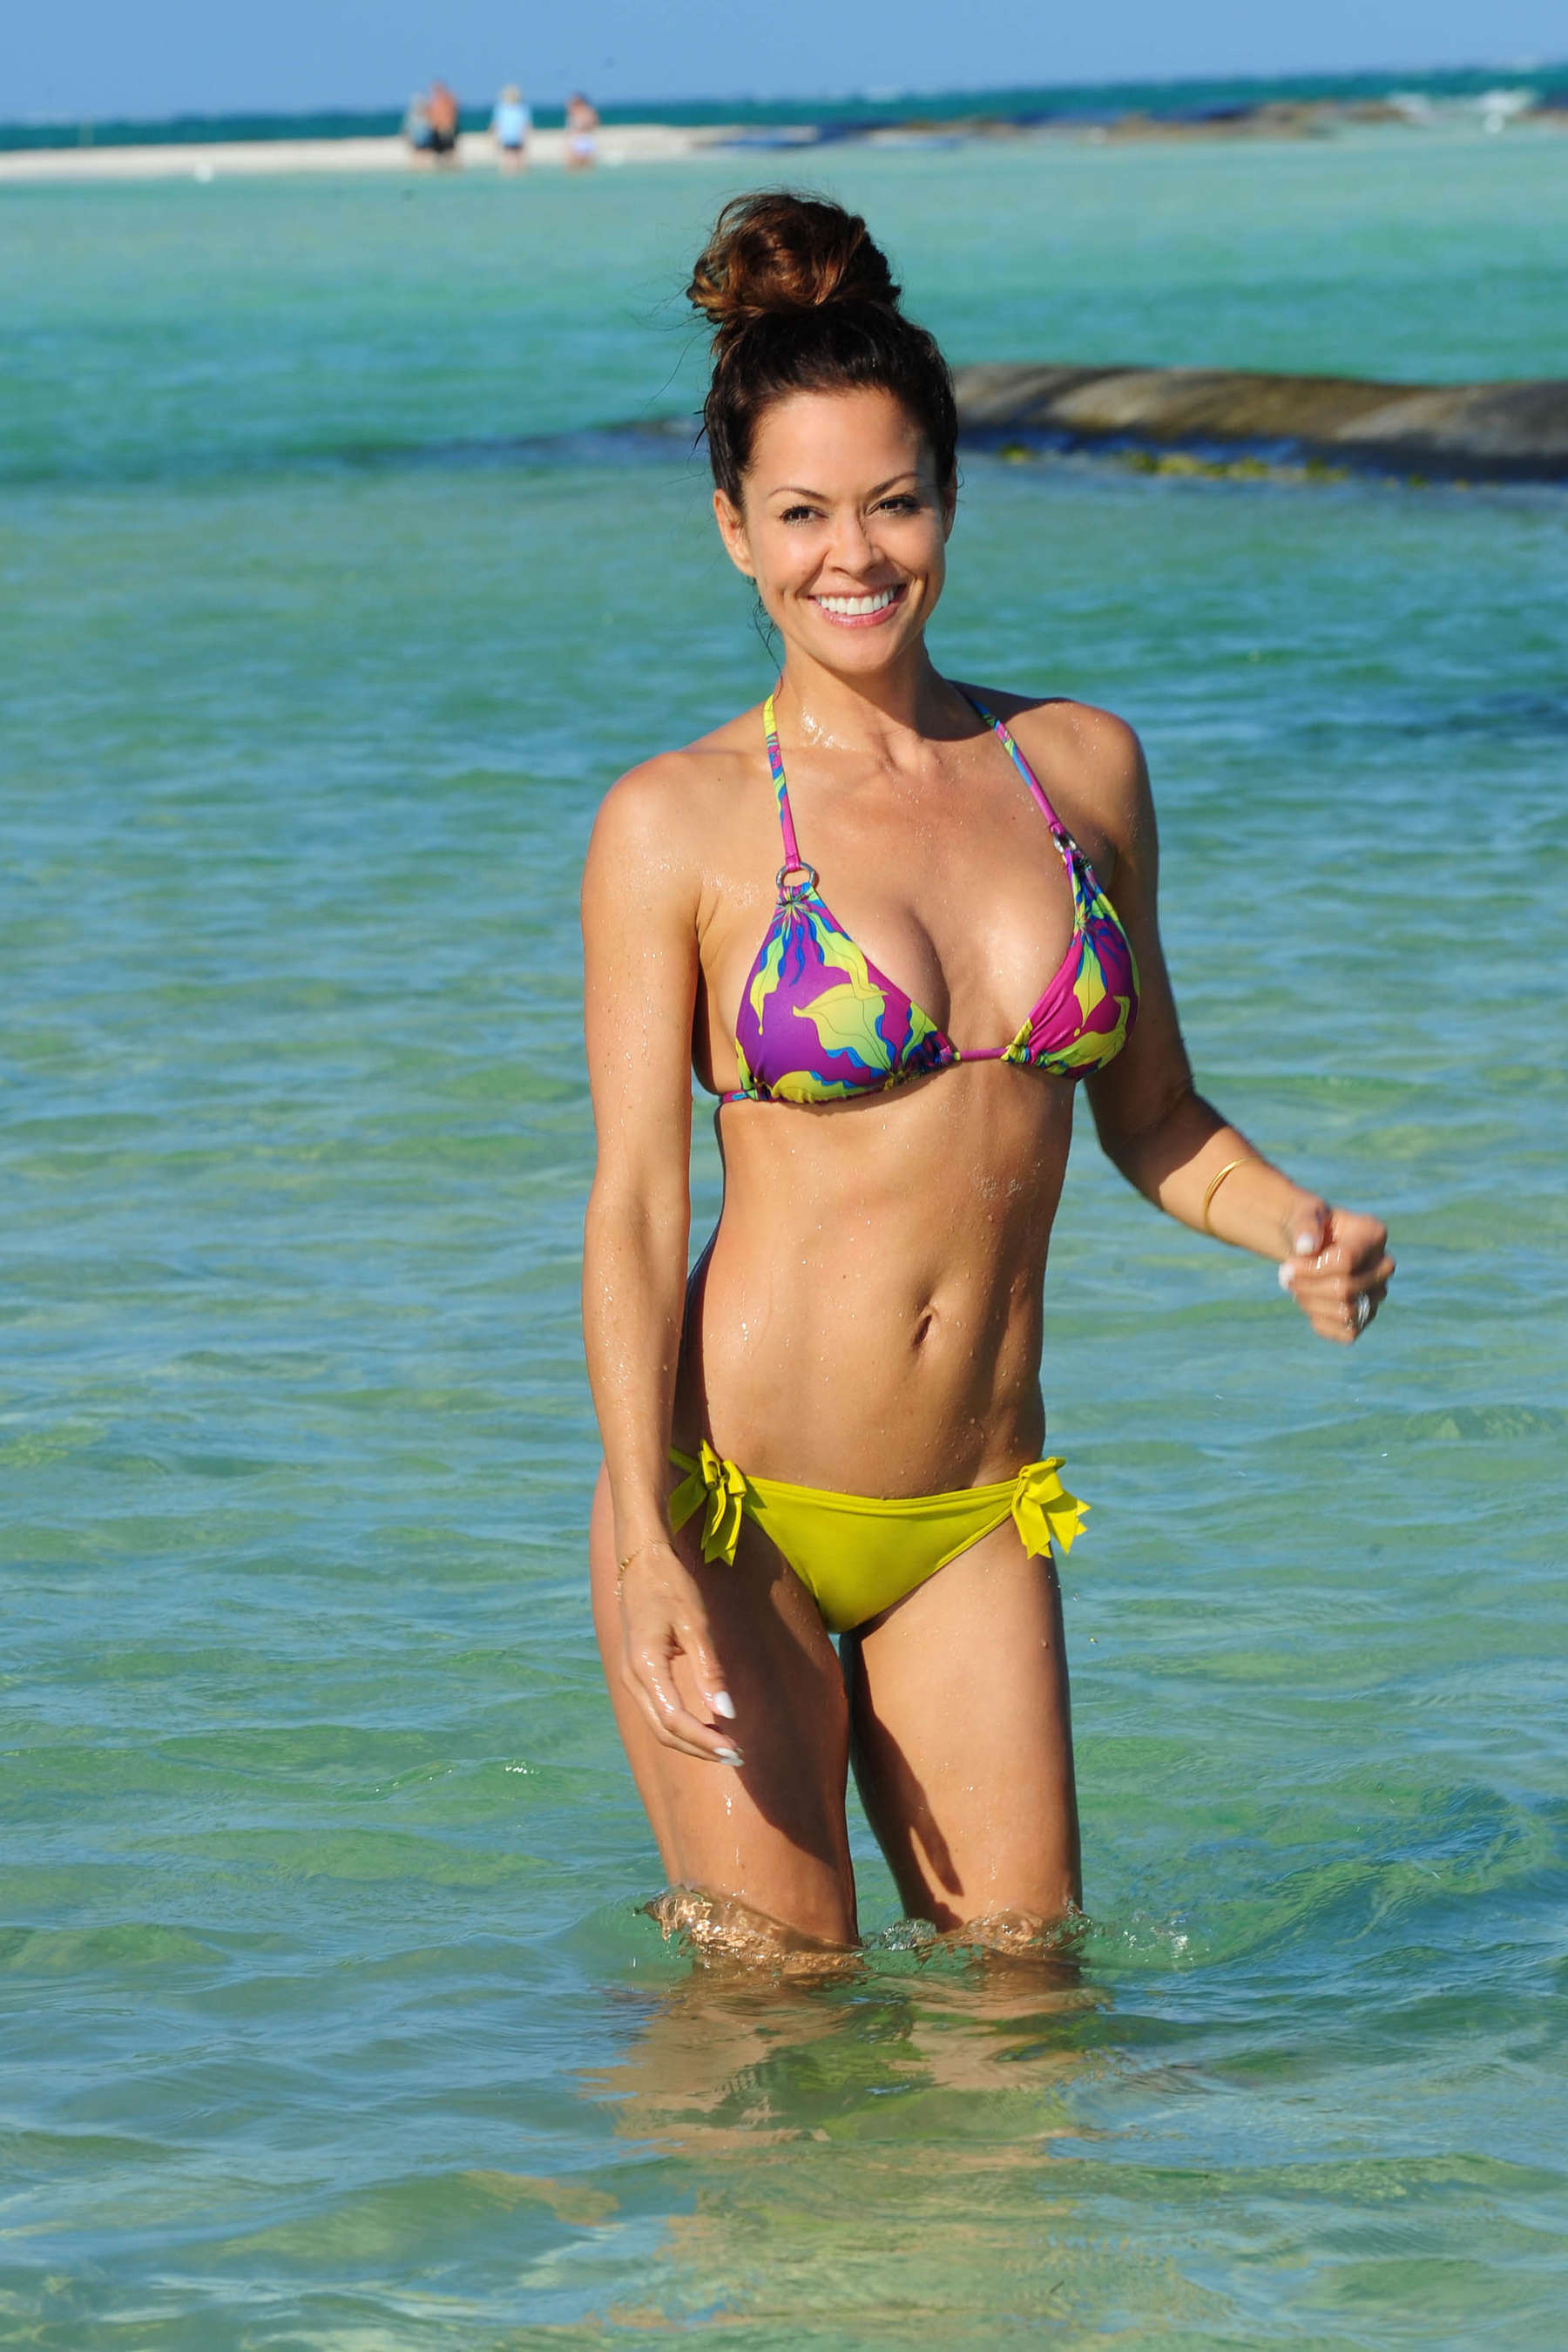 Bikini Bikini Brooke Burke naked photo 2017